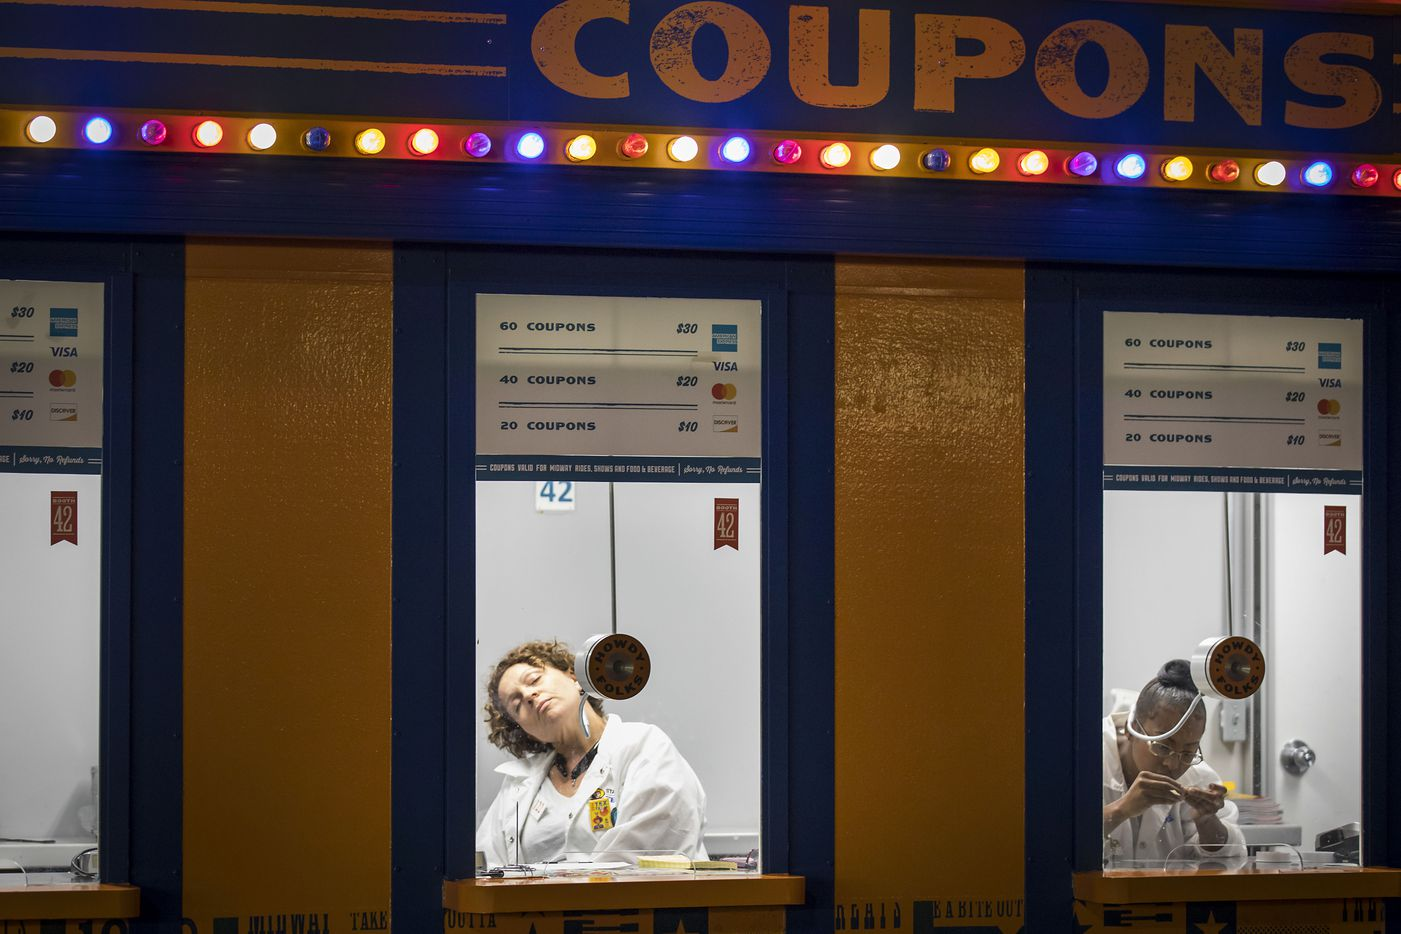 With no guests in sight close to 10 p.m., Brandy Mosley, 42, dozes off while waiting in her coupon booth for the end of her 12-hour shift, after the entrance gates had closed. On weeknights the fair entrance gates close at 9 p.m. but the ticket booths and Midway remain open for a short time until guests already inside finish their nights or are asked to leave so the fairgrounds can shut down.